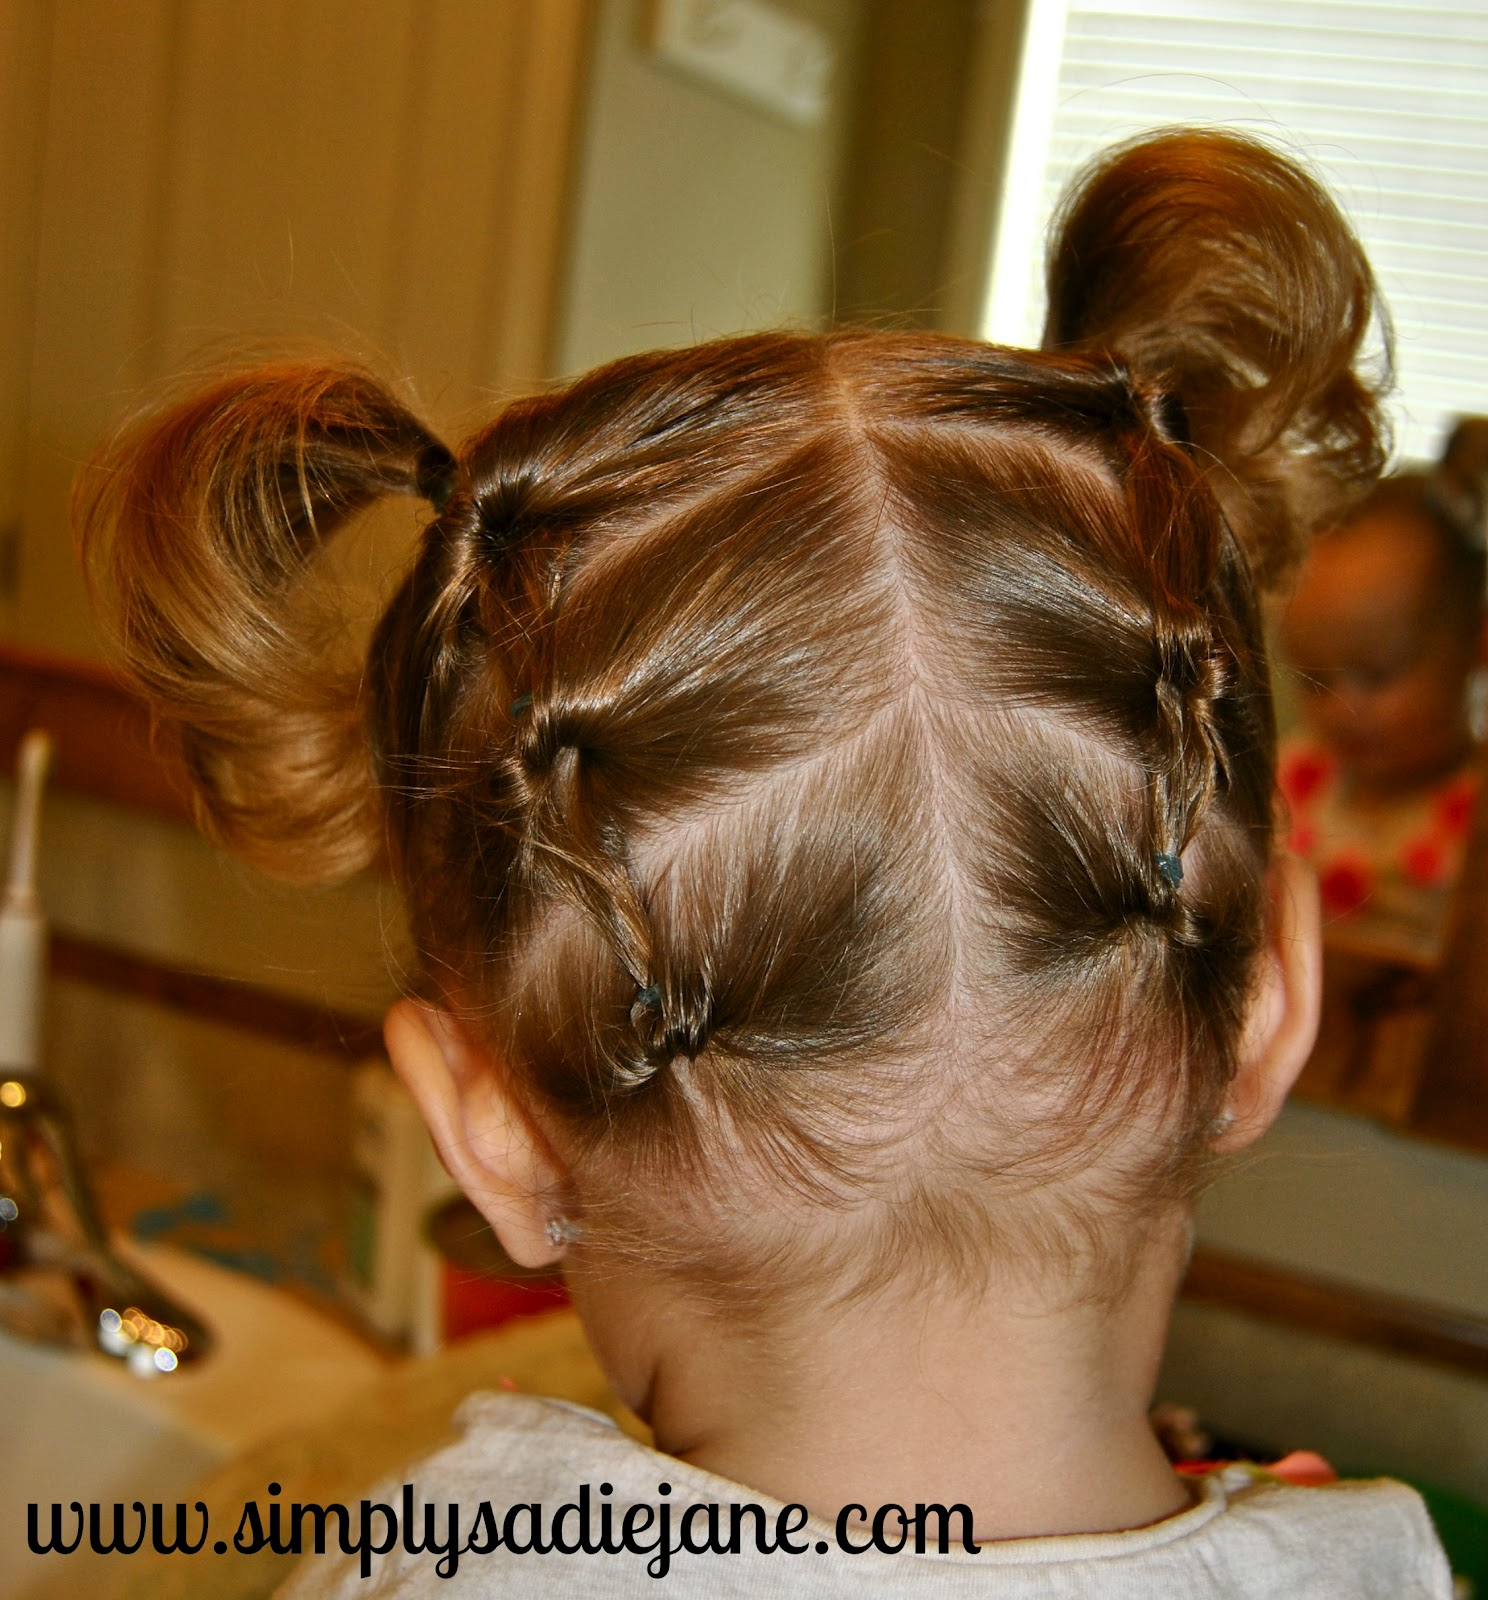 22 more fun and creative toddler hairstyles!!